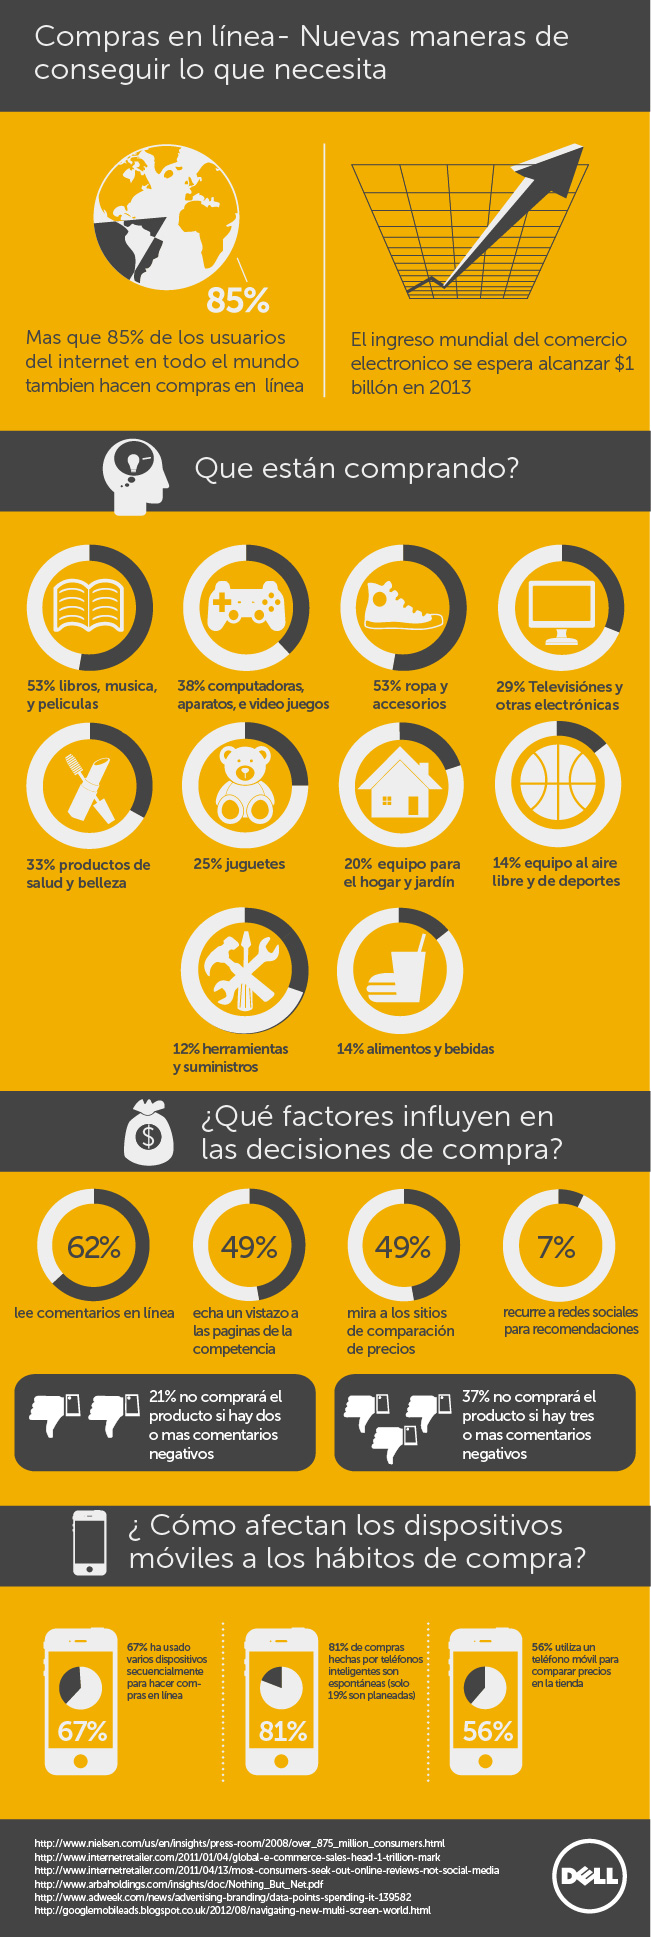 Infografia-Compras-Online-Habitos-Tendencias-Factores-Movil-DELL